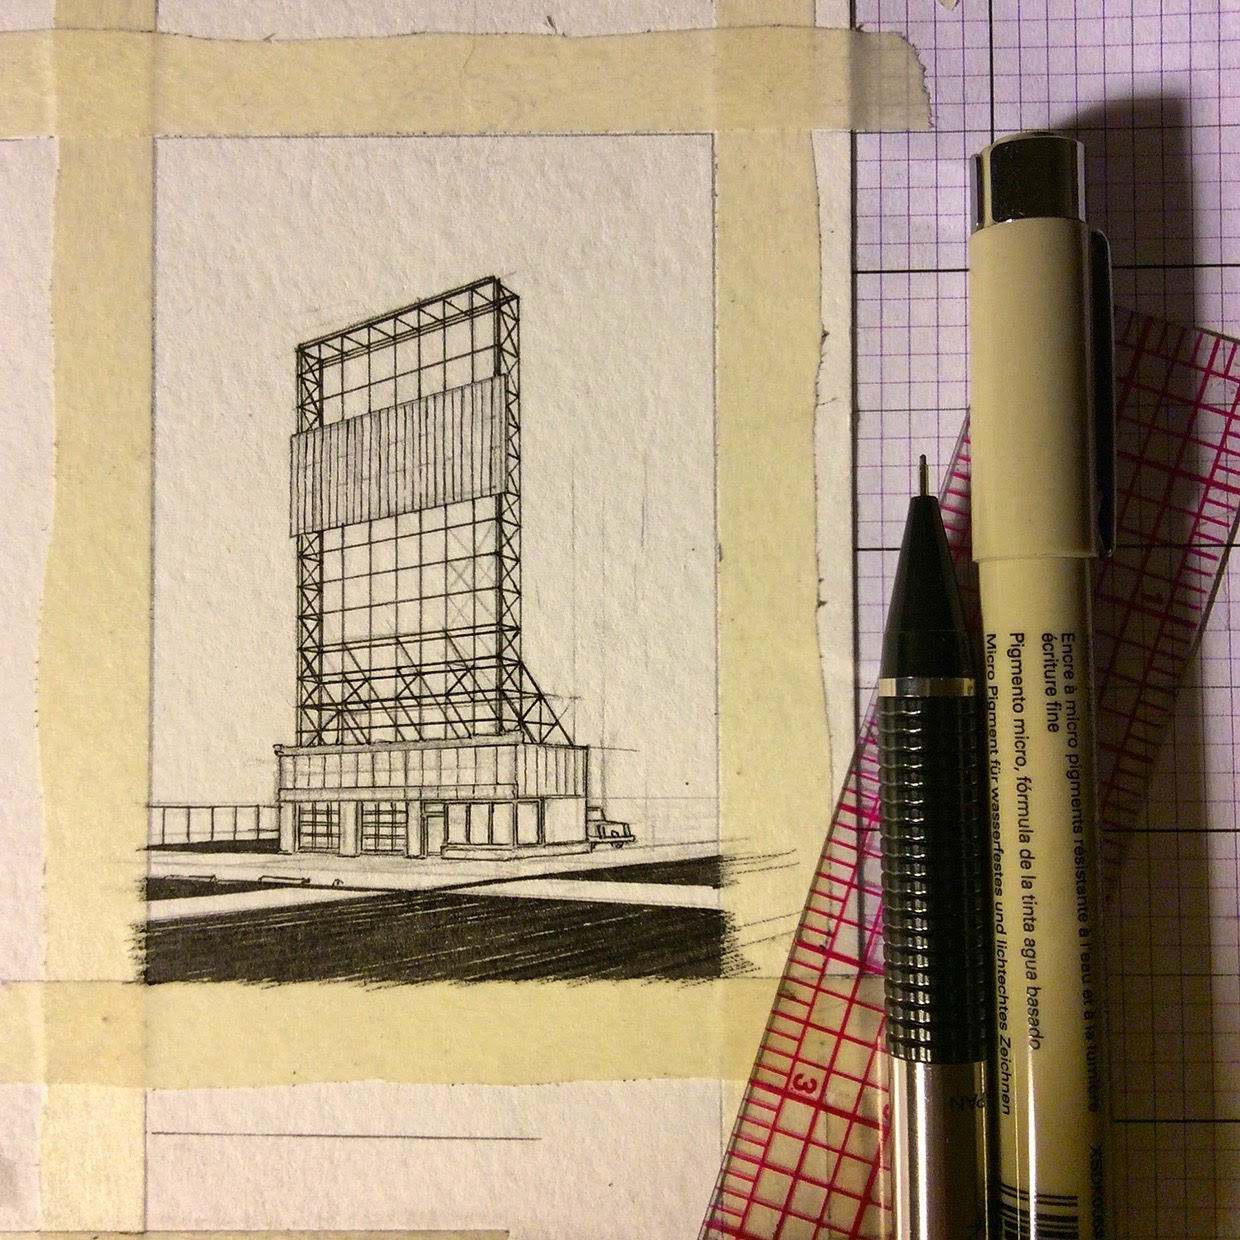 02-Taylor-Mazerhas-Miniature-Pencil-and-Ink-Drawings-with-a-lot-of-Detail-www-designstack-co